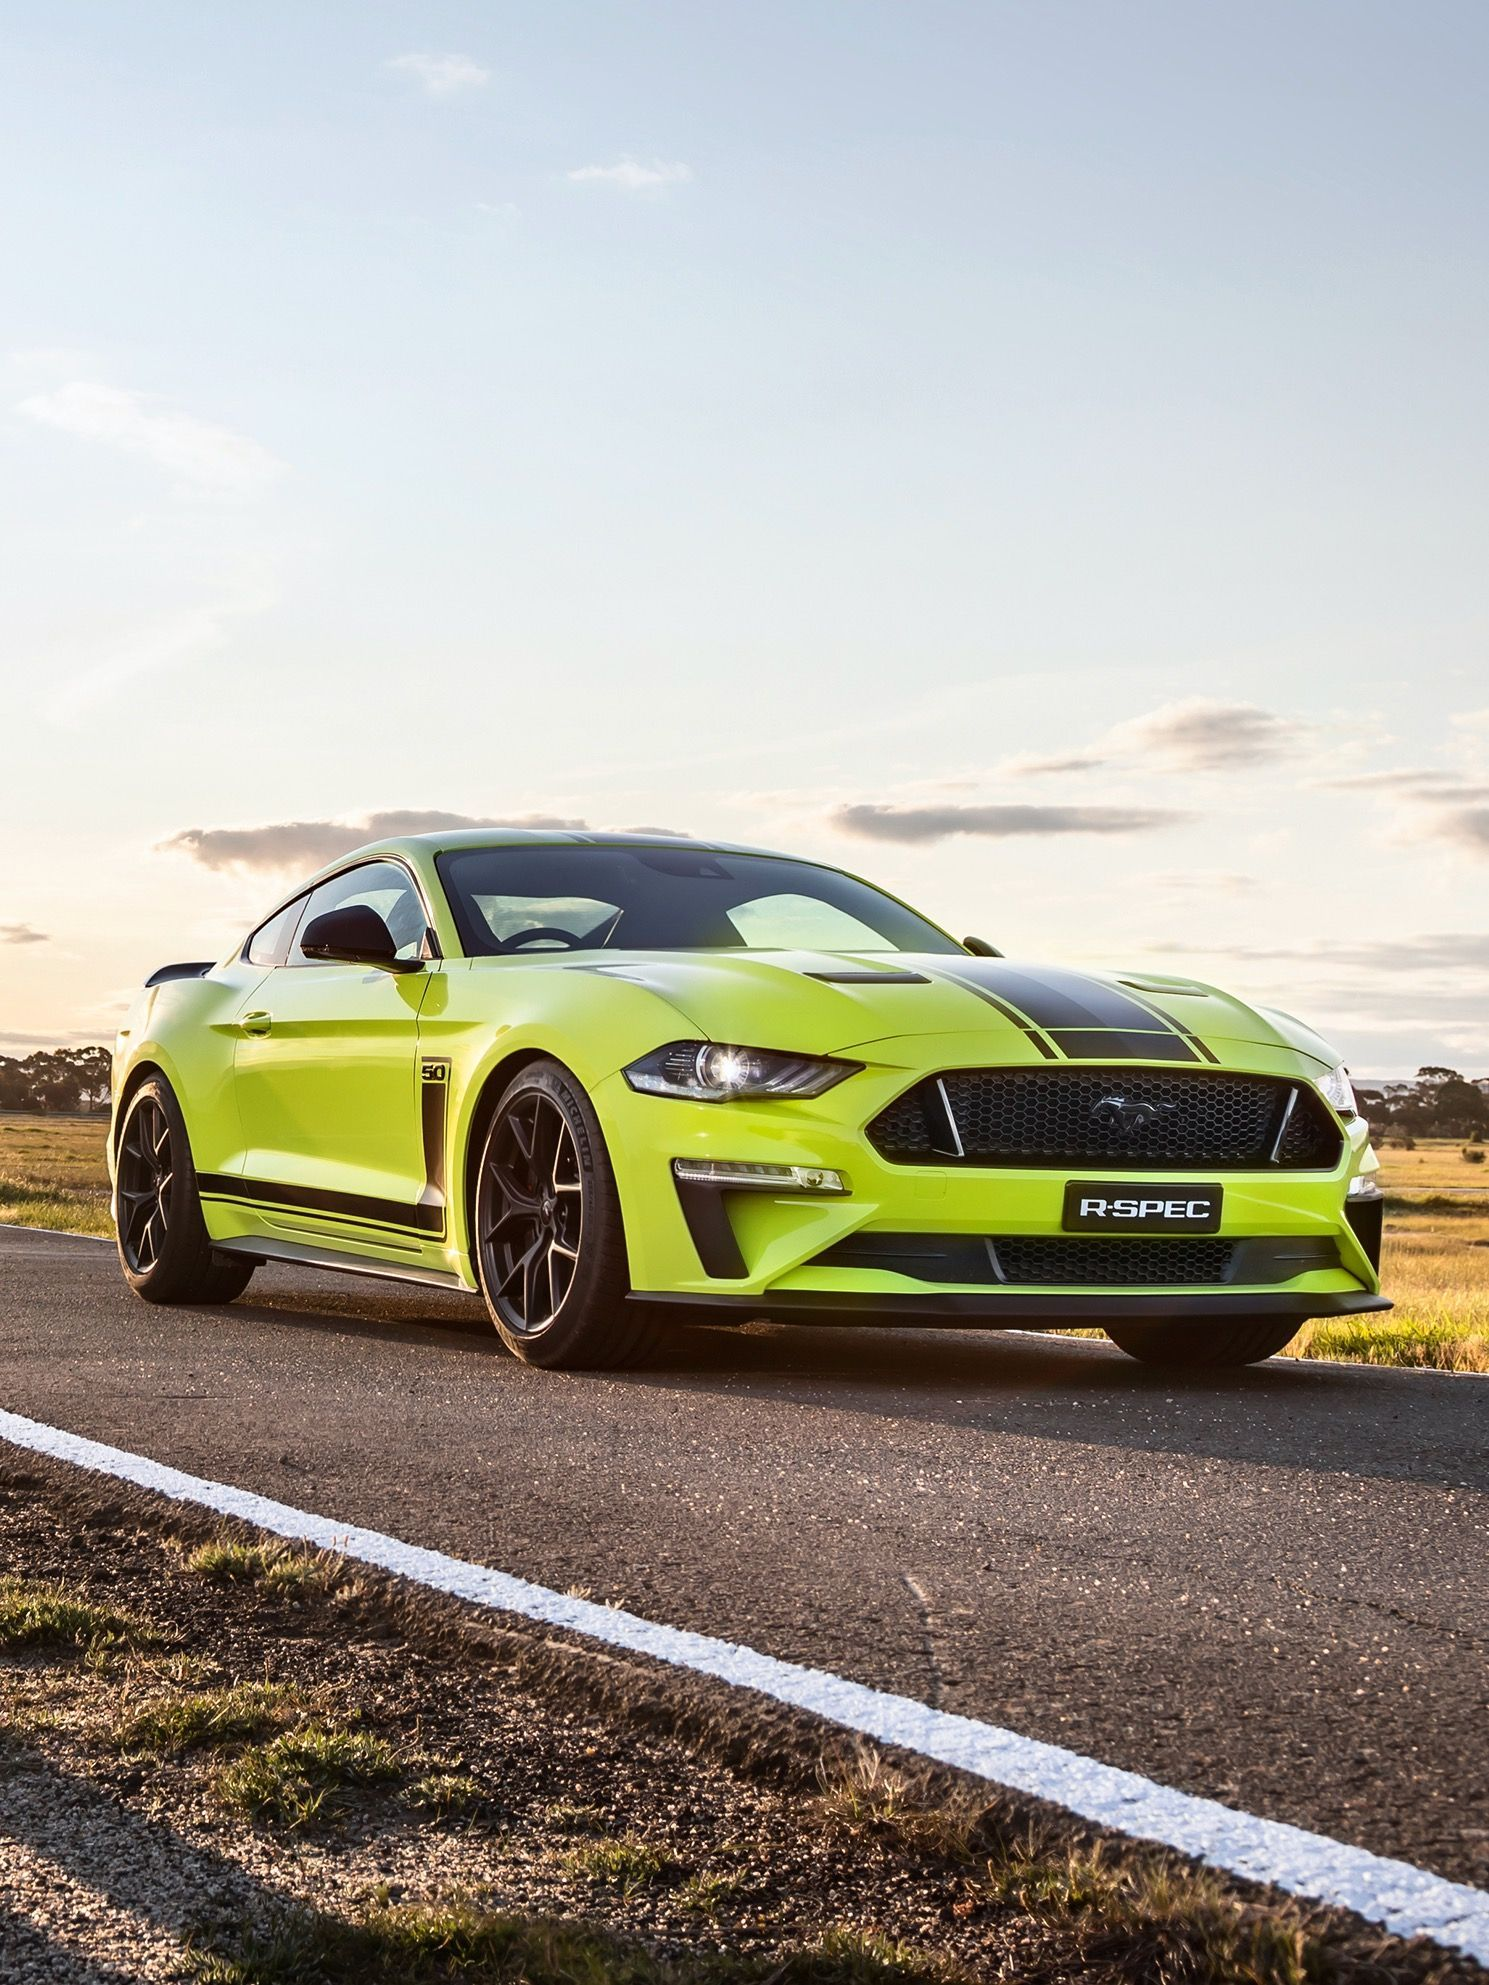 2020 Ford Mustang R Spec Australia Version Mustang Ford